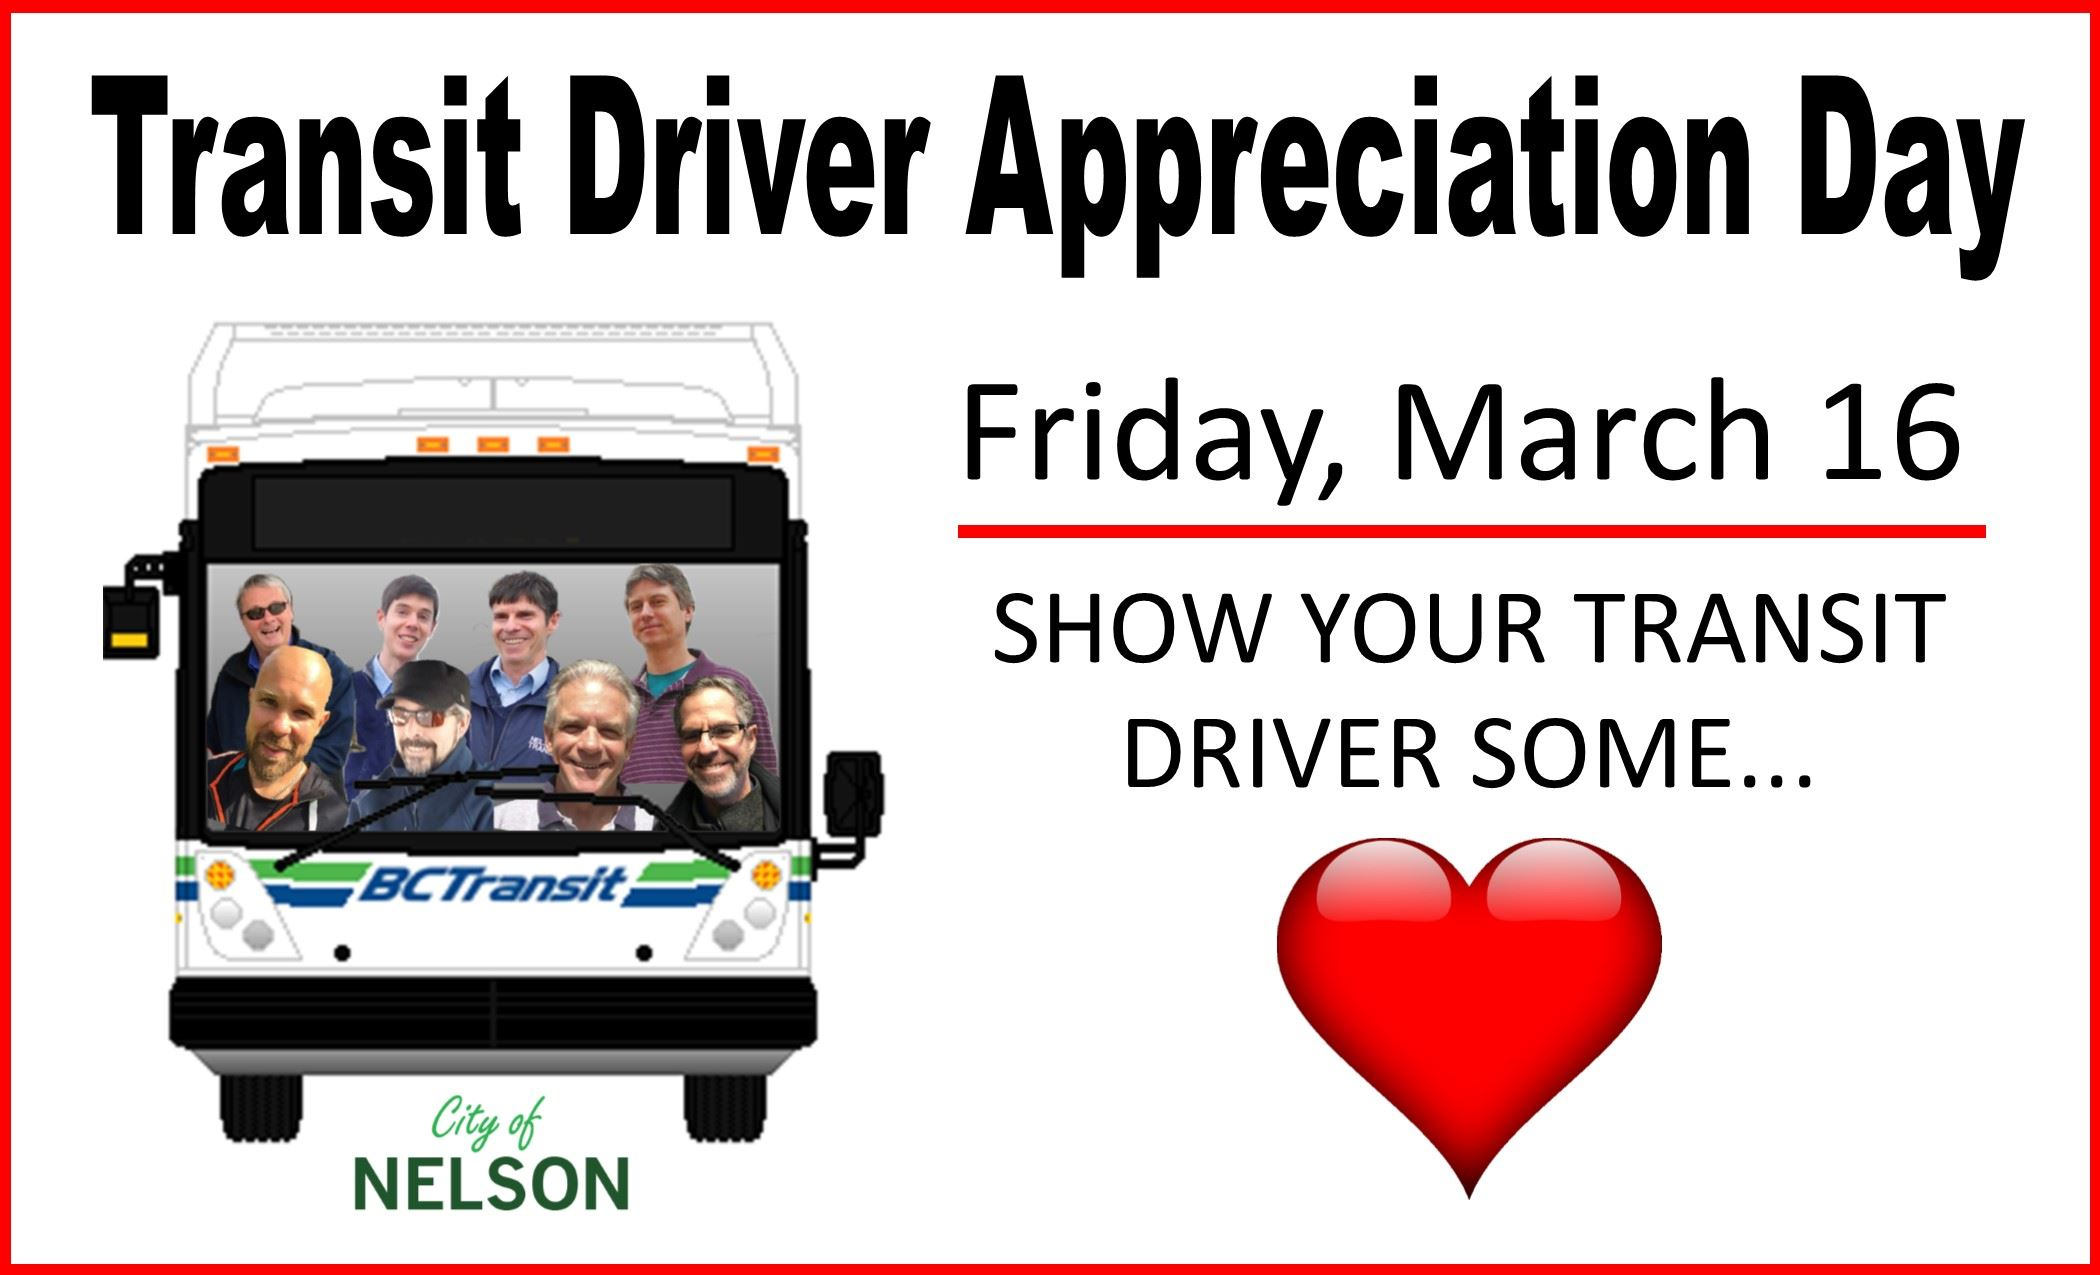 transit driver appreciation